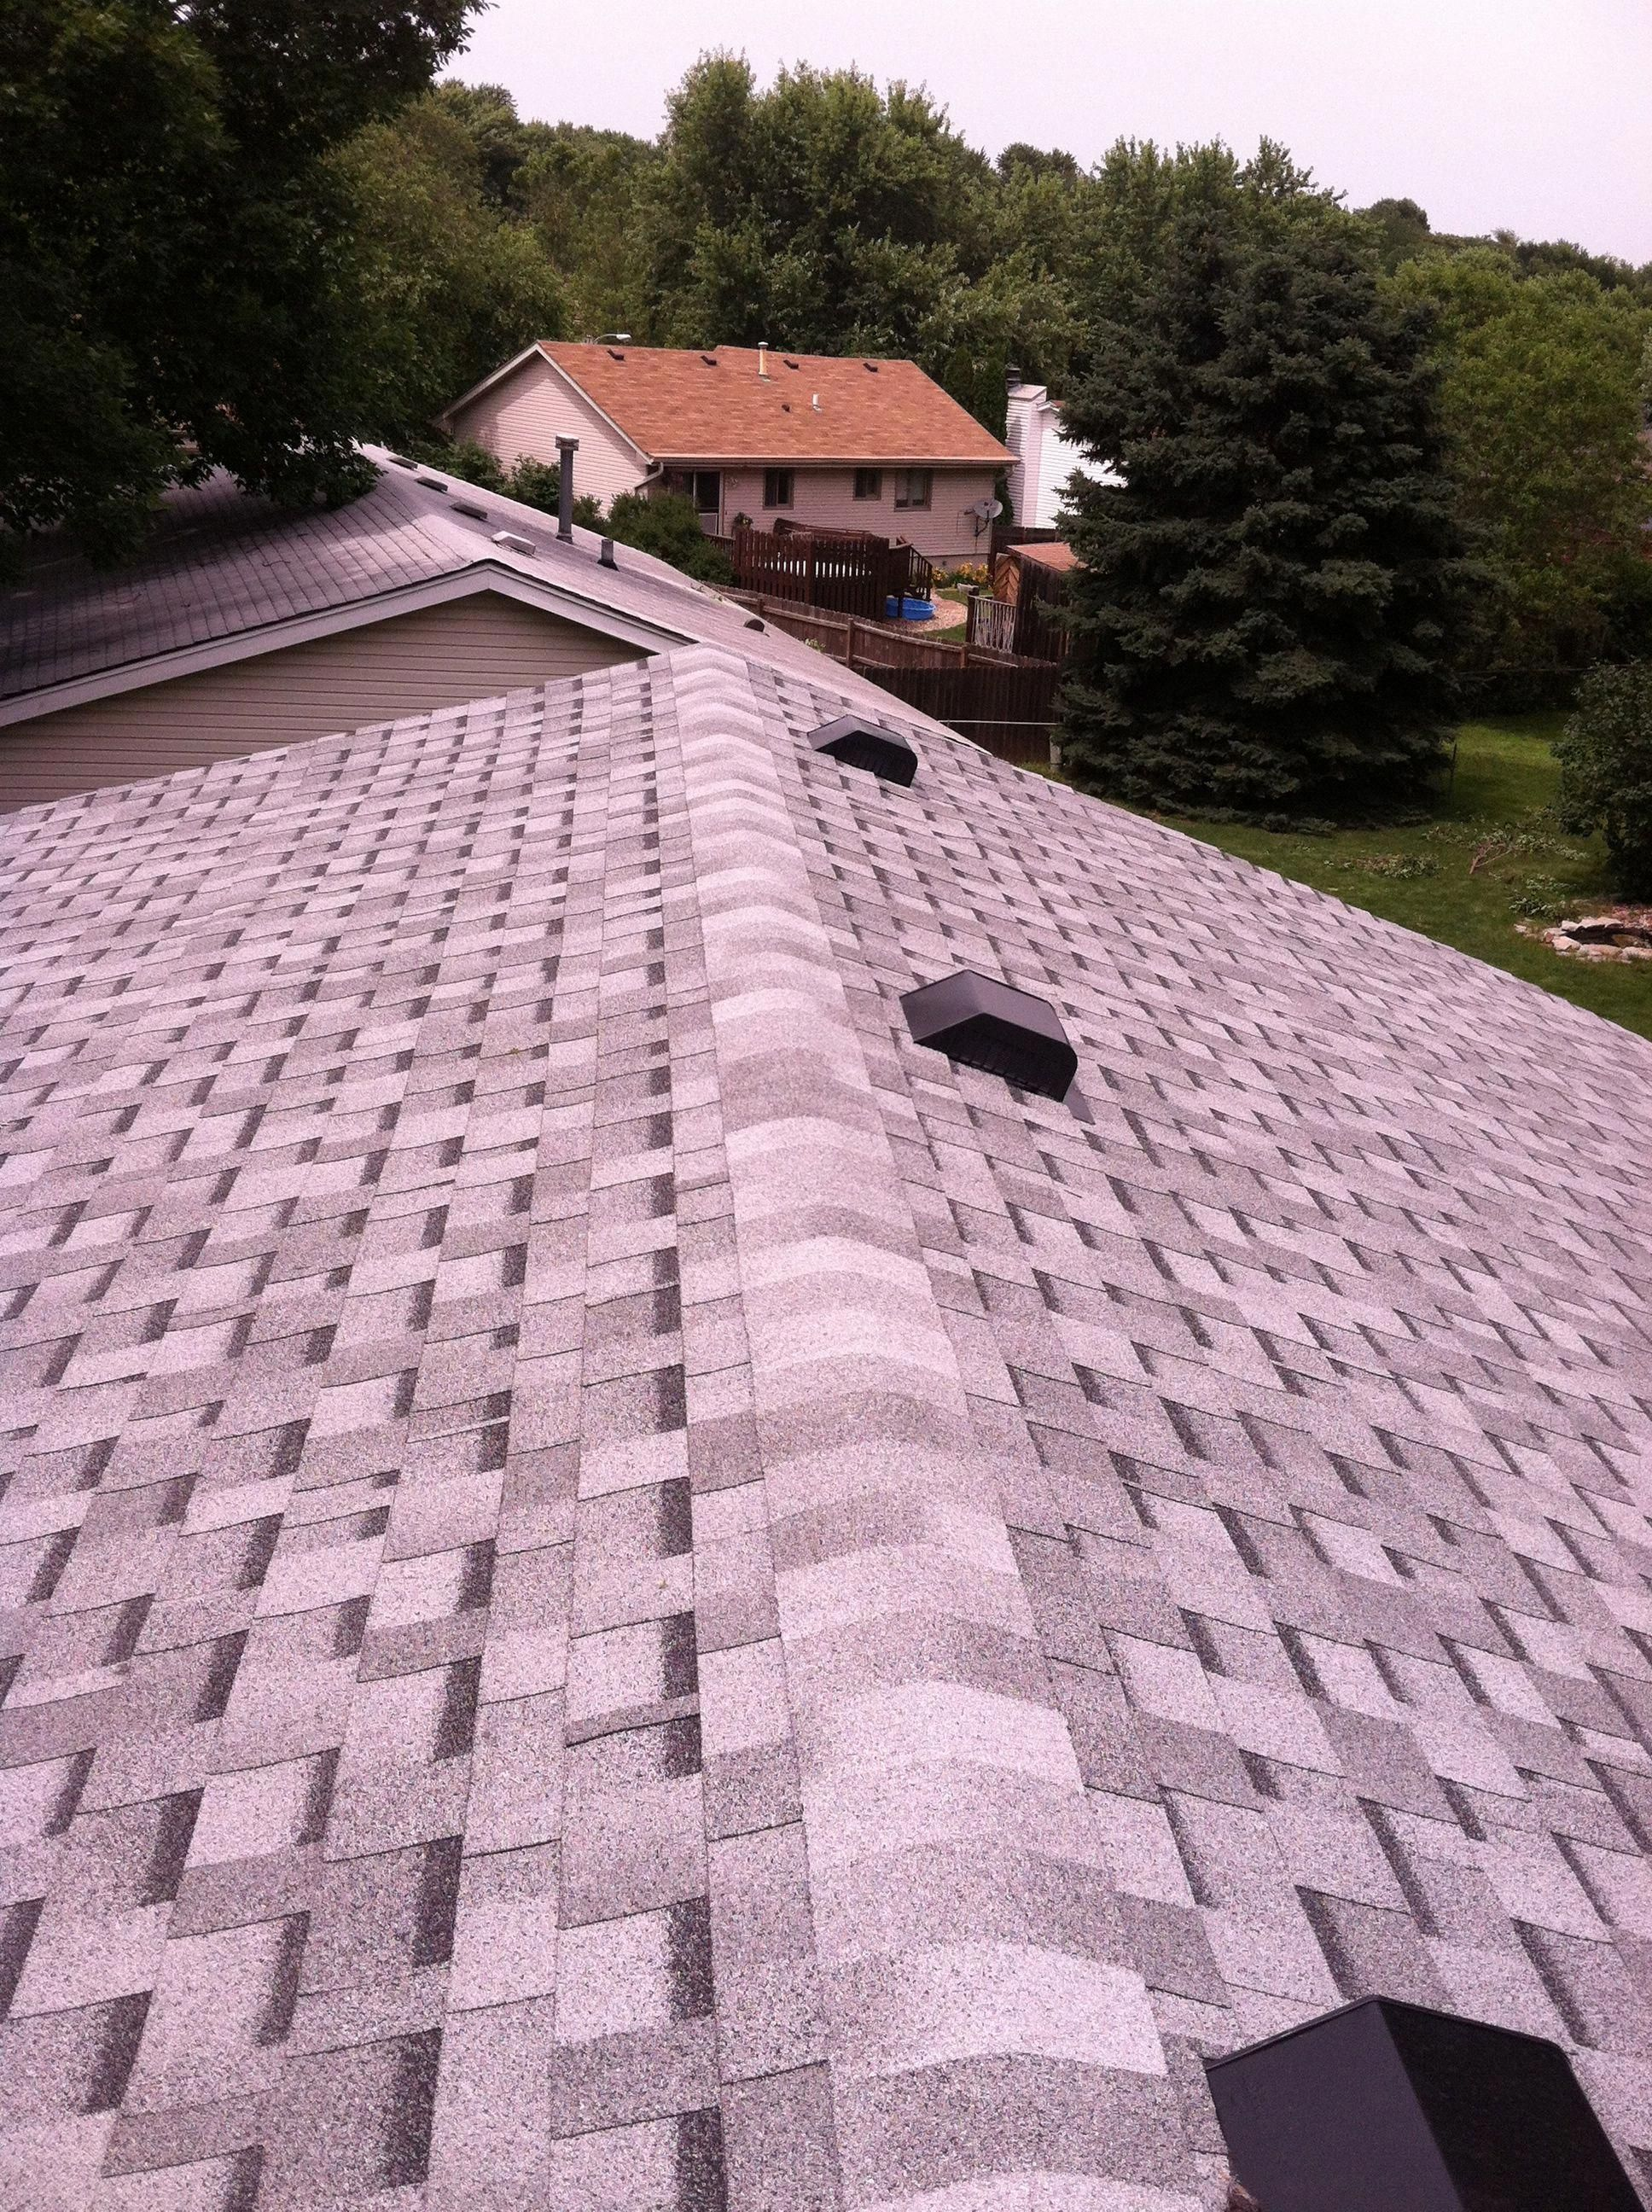 Trendy Options To Have A Look At Roofstyles Modern Roofing Roof Architecture Roof Shingles